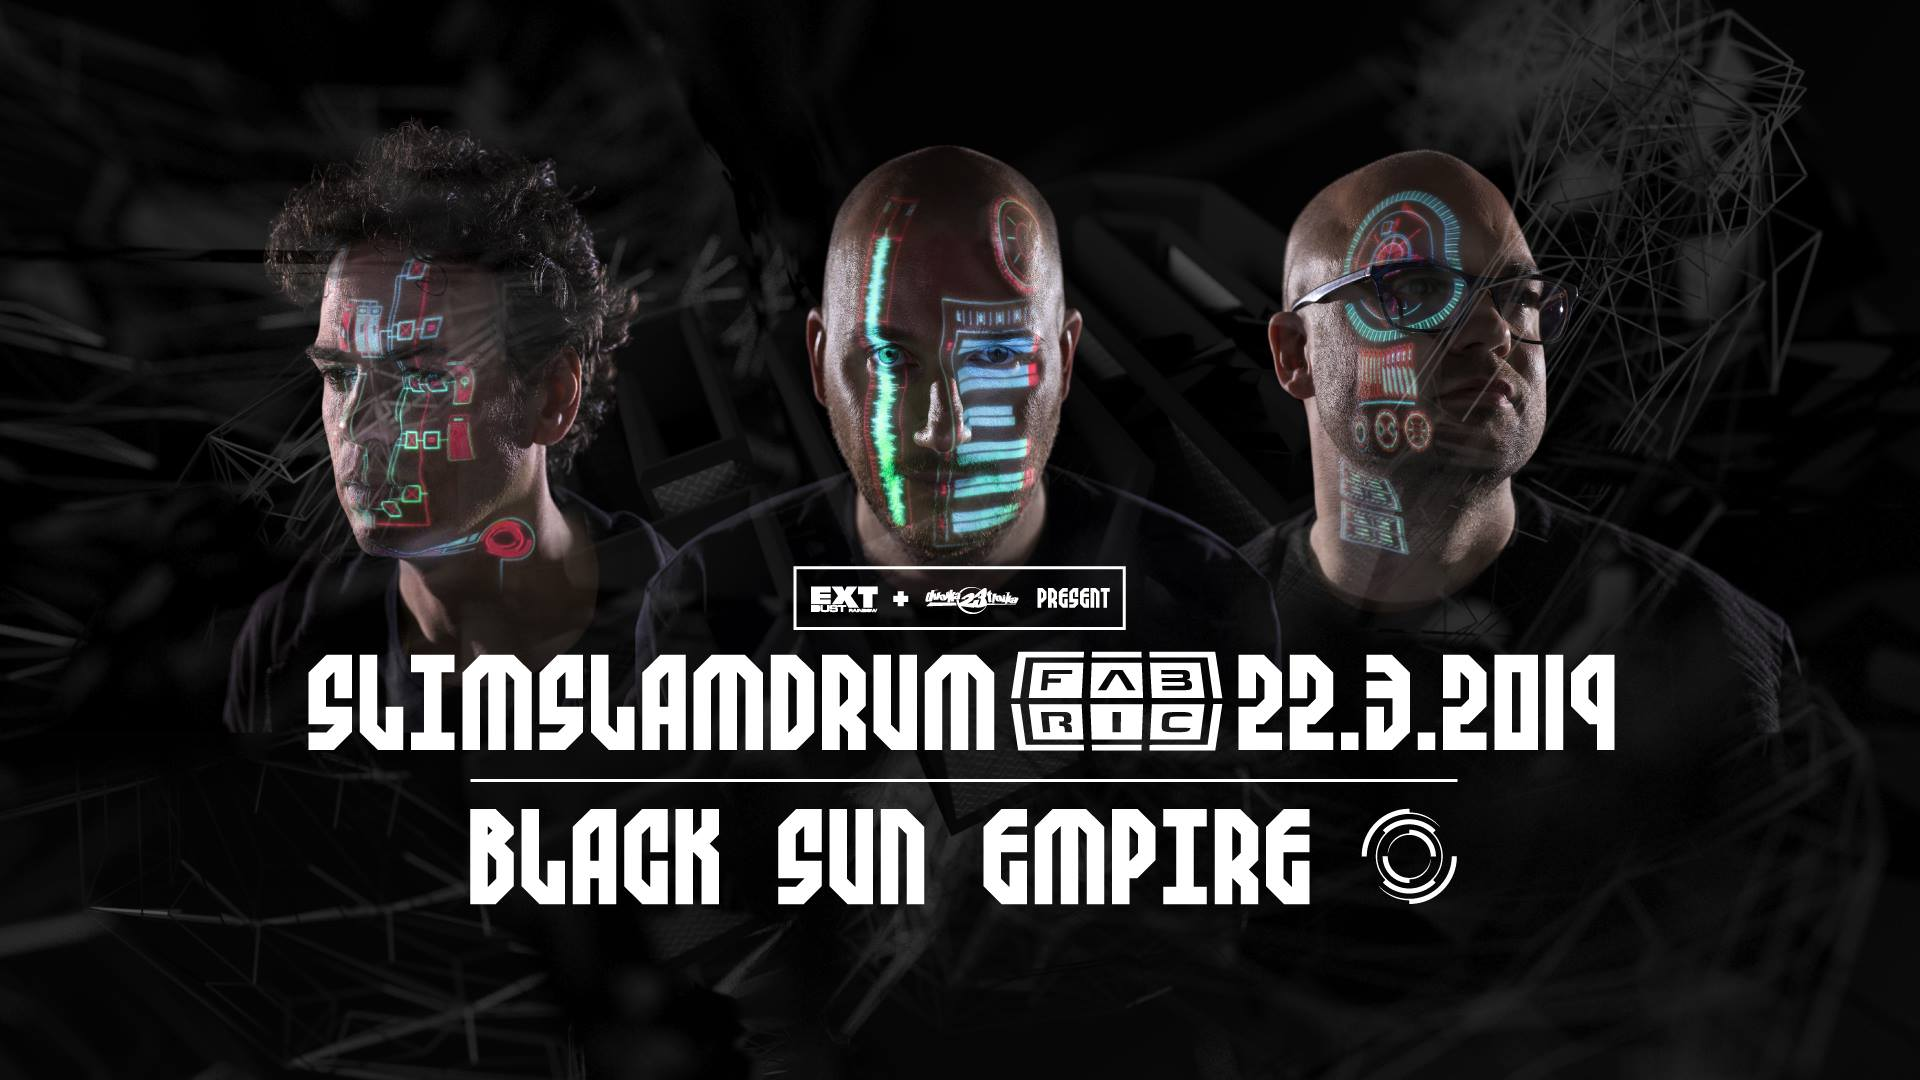 SSD w/ Black Sun Empire flyer